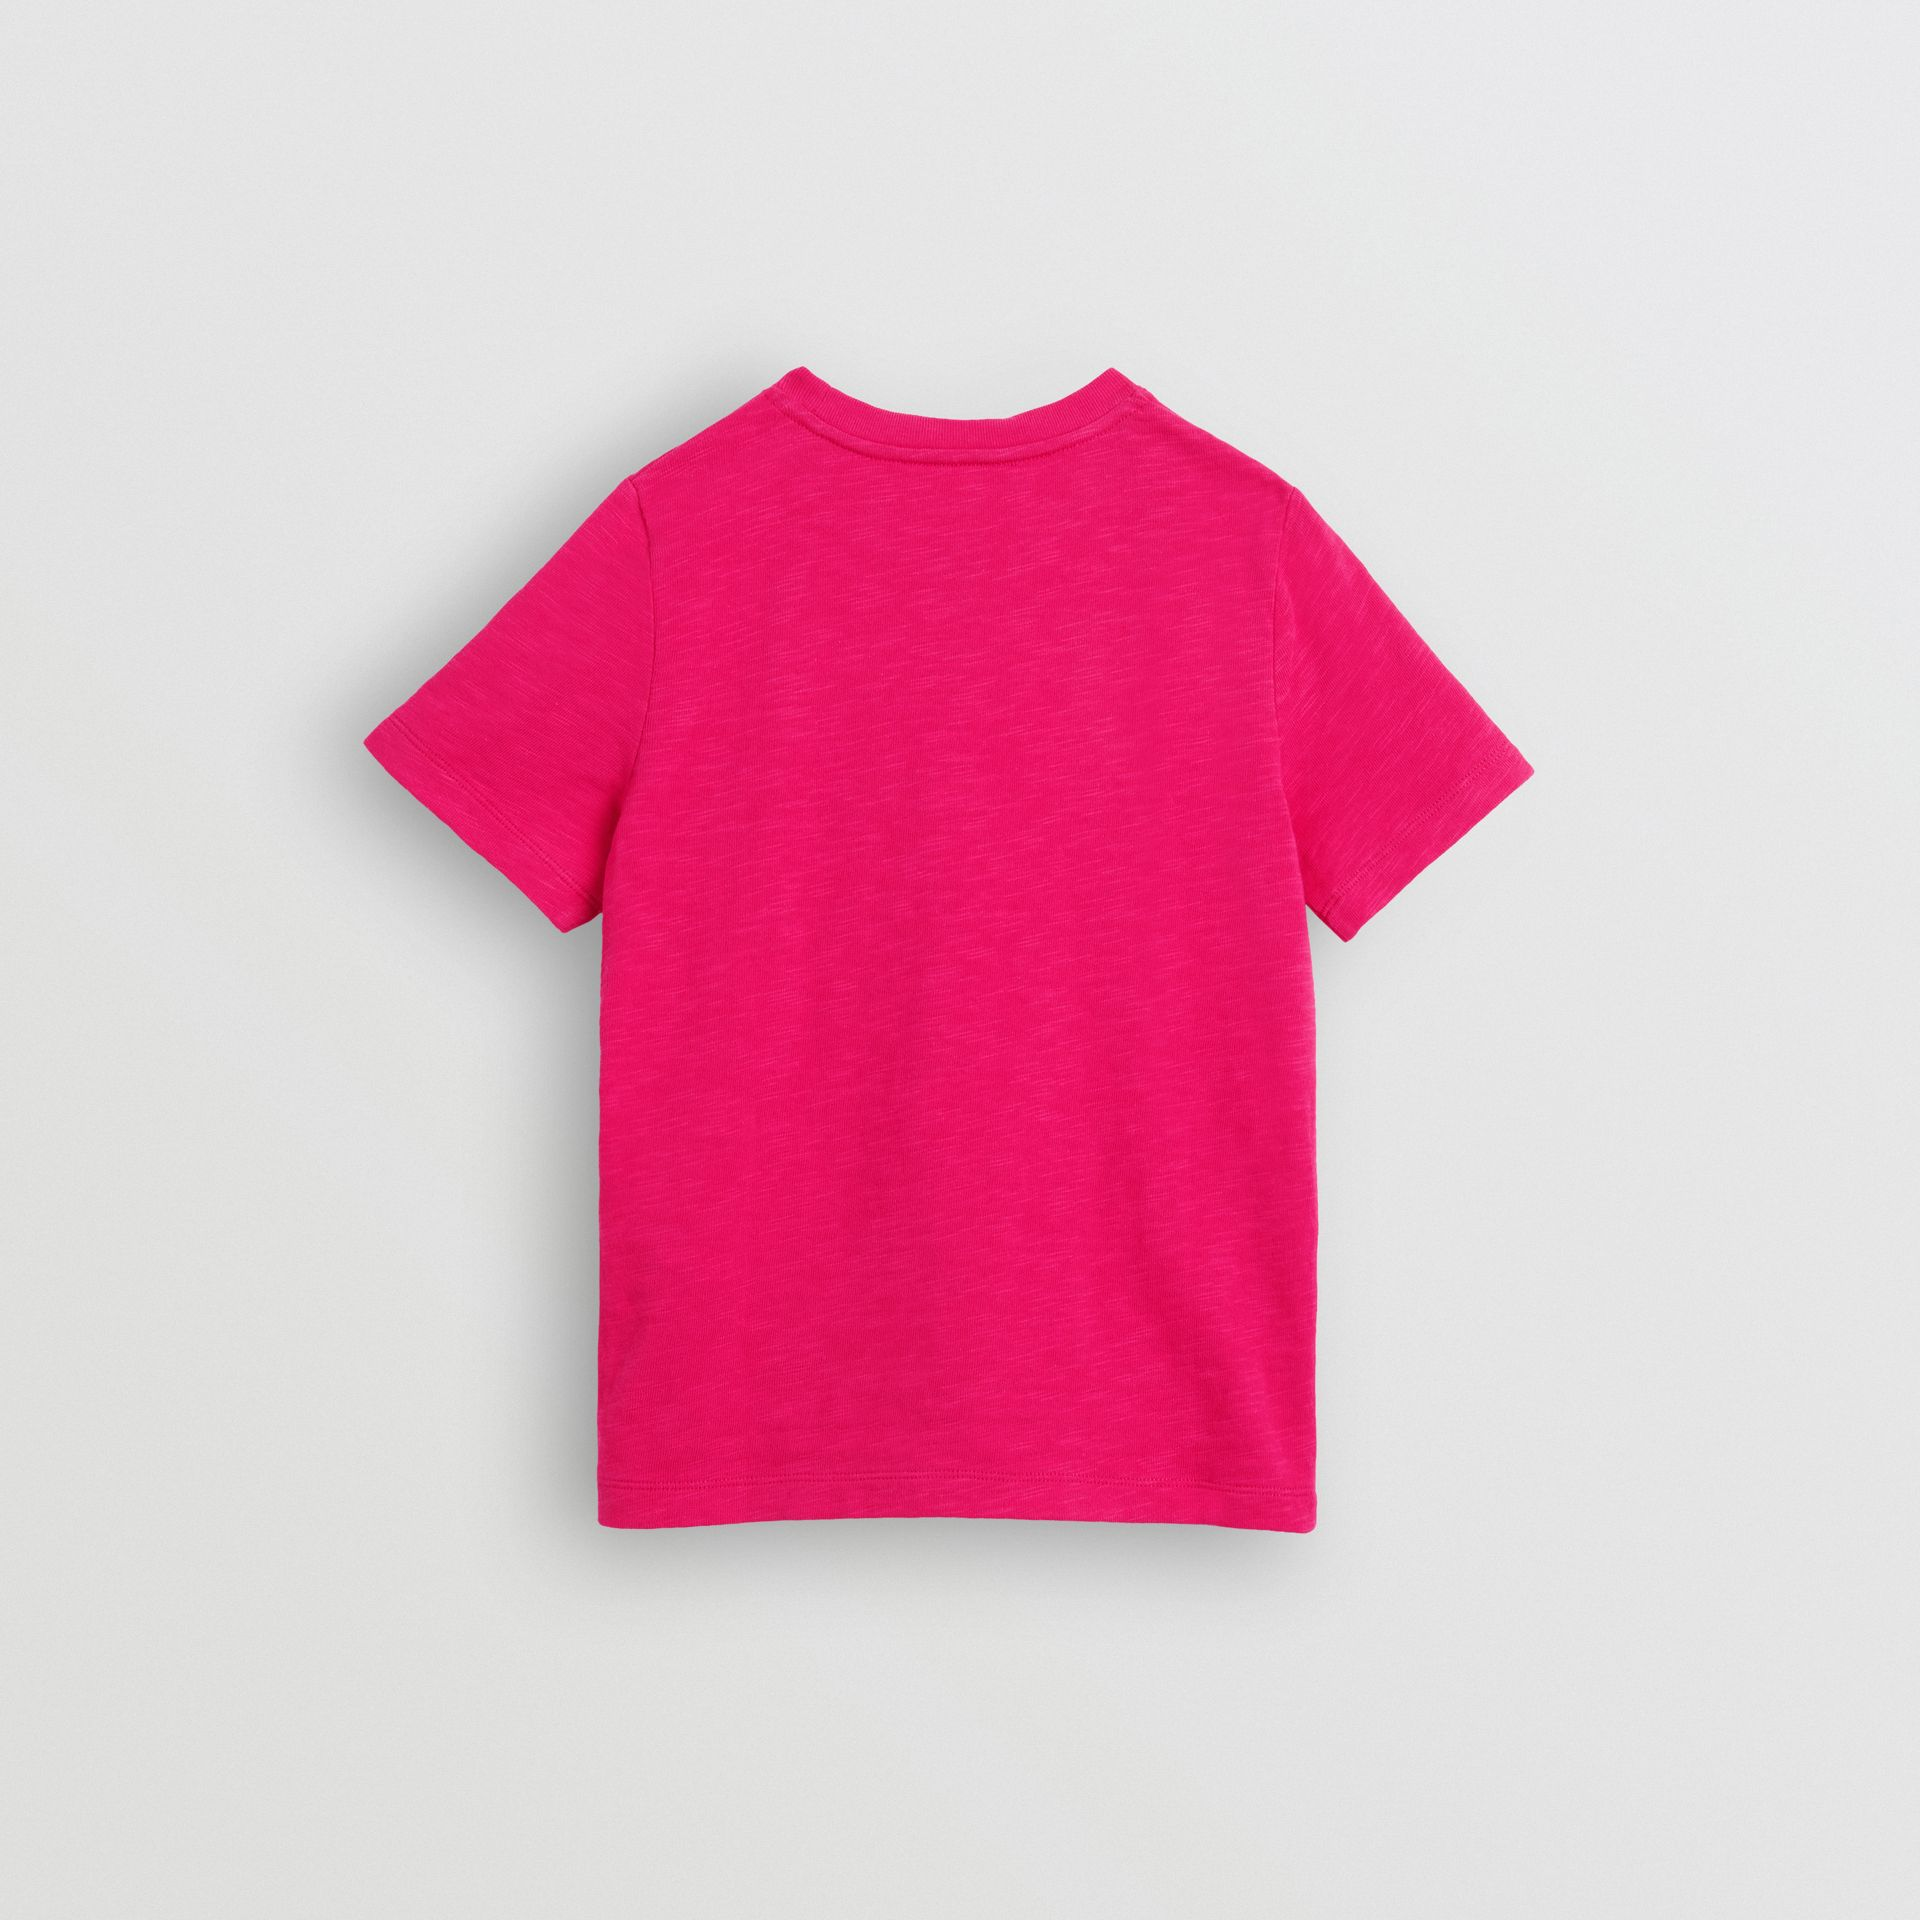 Logo Print Cotton T-shirt in Raspberry Pink | Burberry - gallery image 3